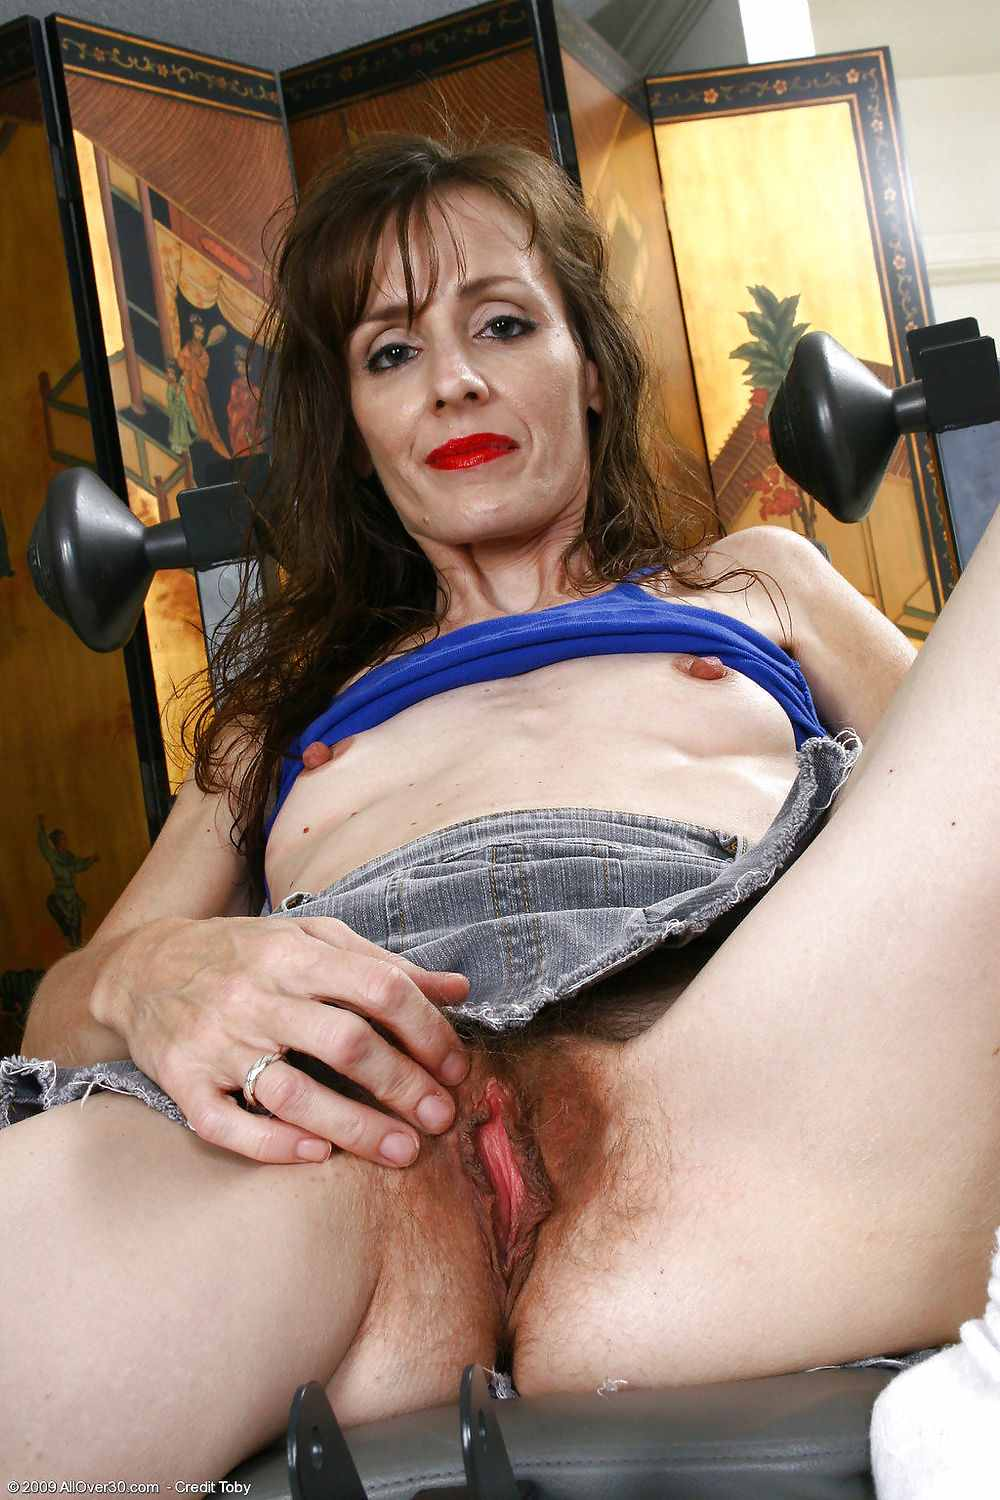 Pictures of mature open pussy, naked gi rlsporn